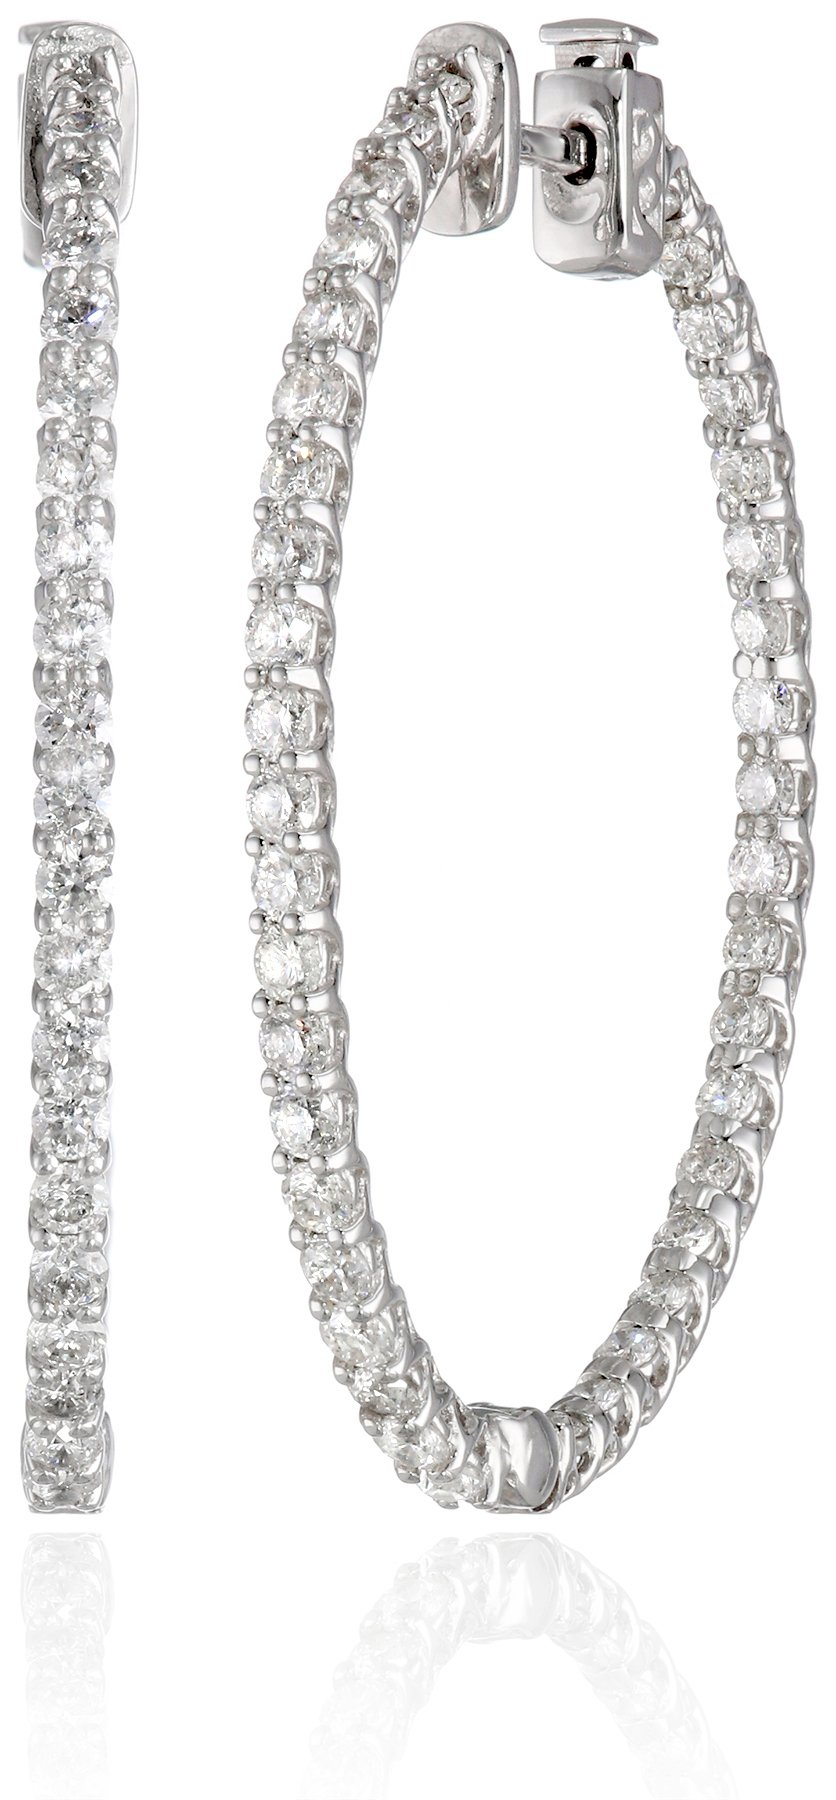 14kt White Gold Inside-Out Shared-Prong Diamond Oval Hoops (3 cttw, H-I Color, I1 Clarity)